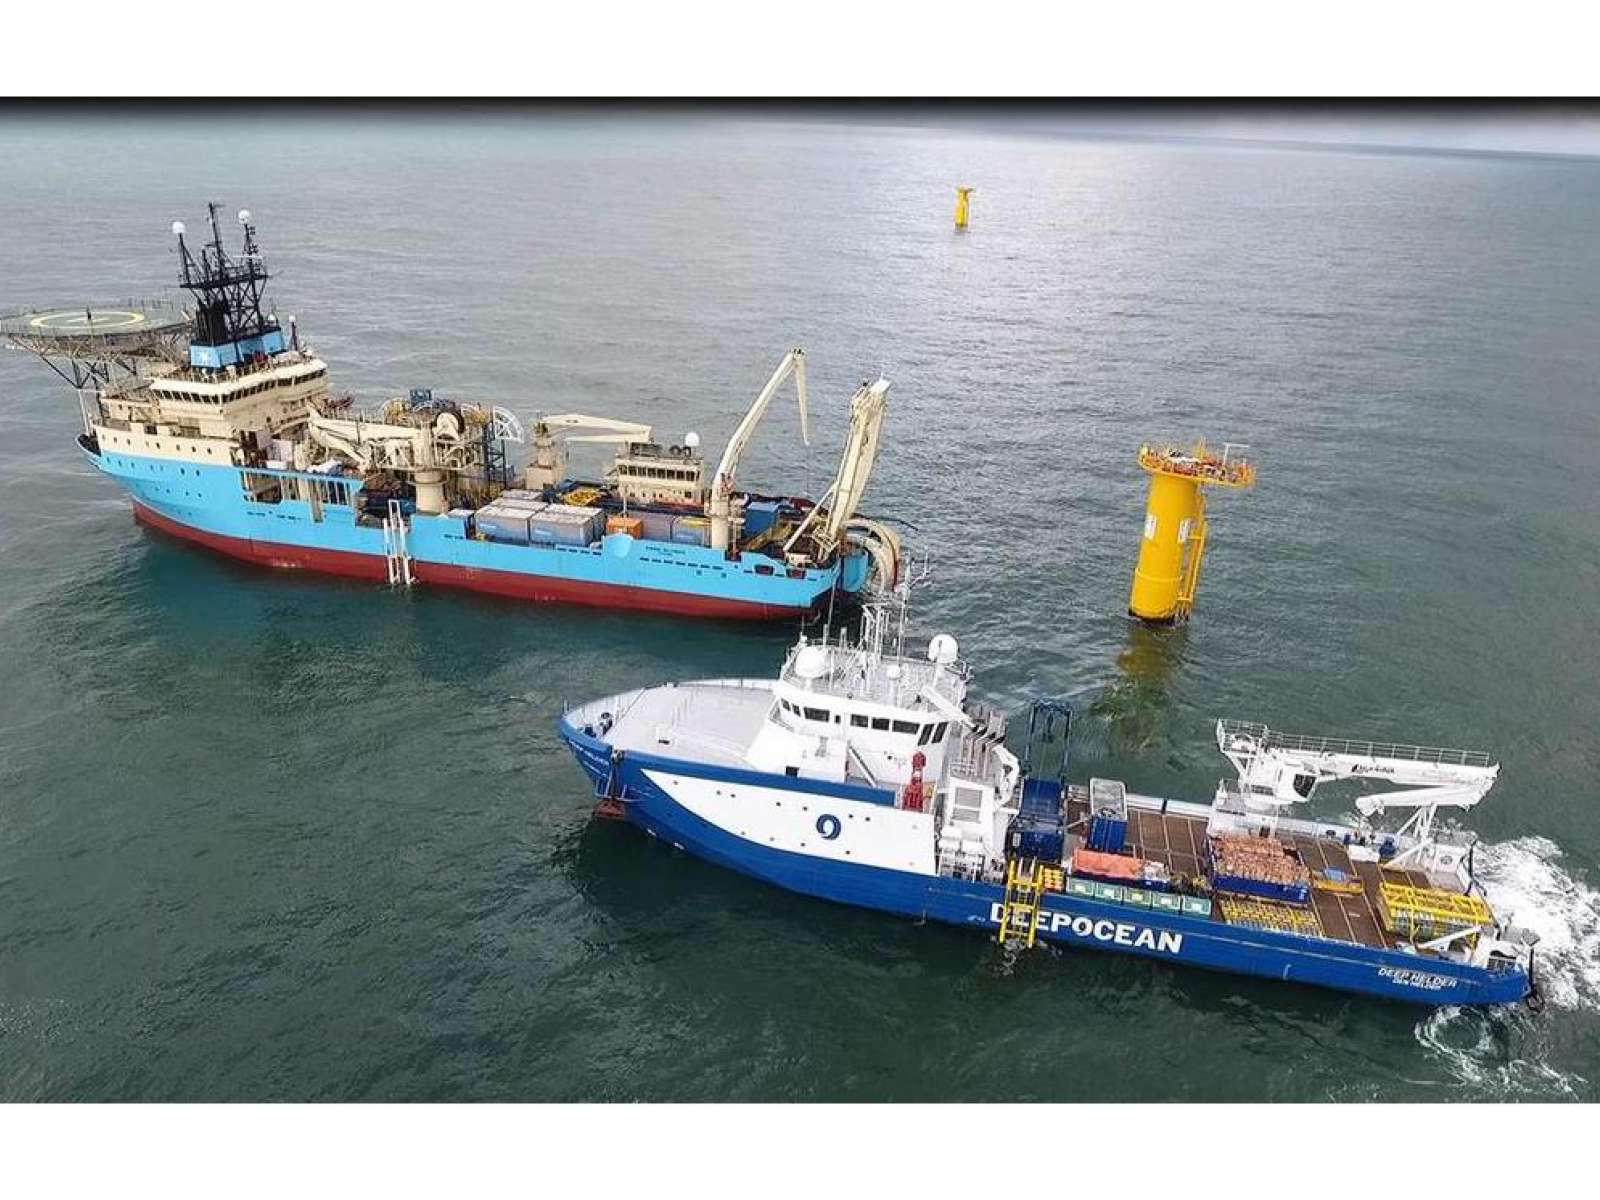 DeepOcean started the Nemo Link project, using nCentric equipment